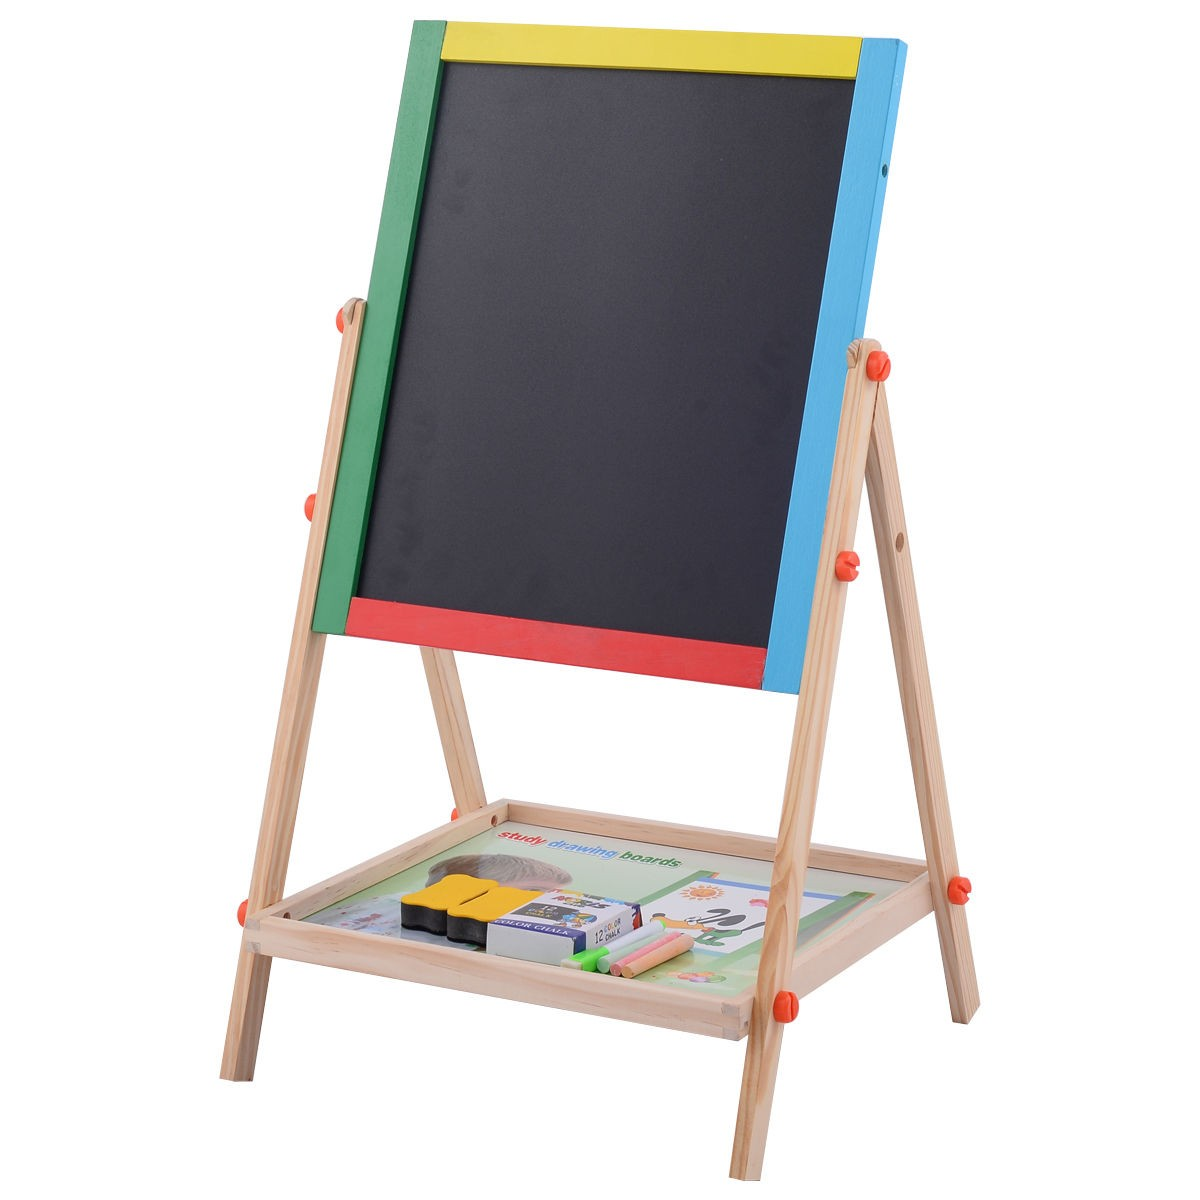 Kids Child Adjustable 2 In 1 Wooden Easel Chalk Drawing